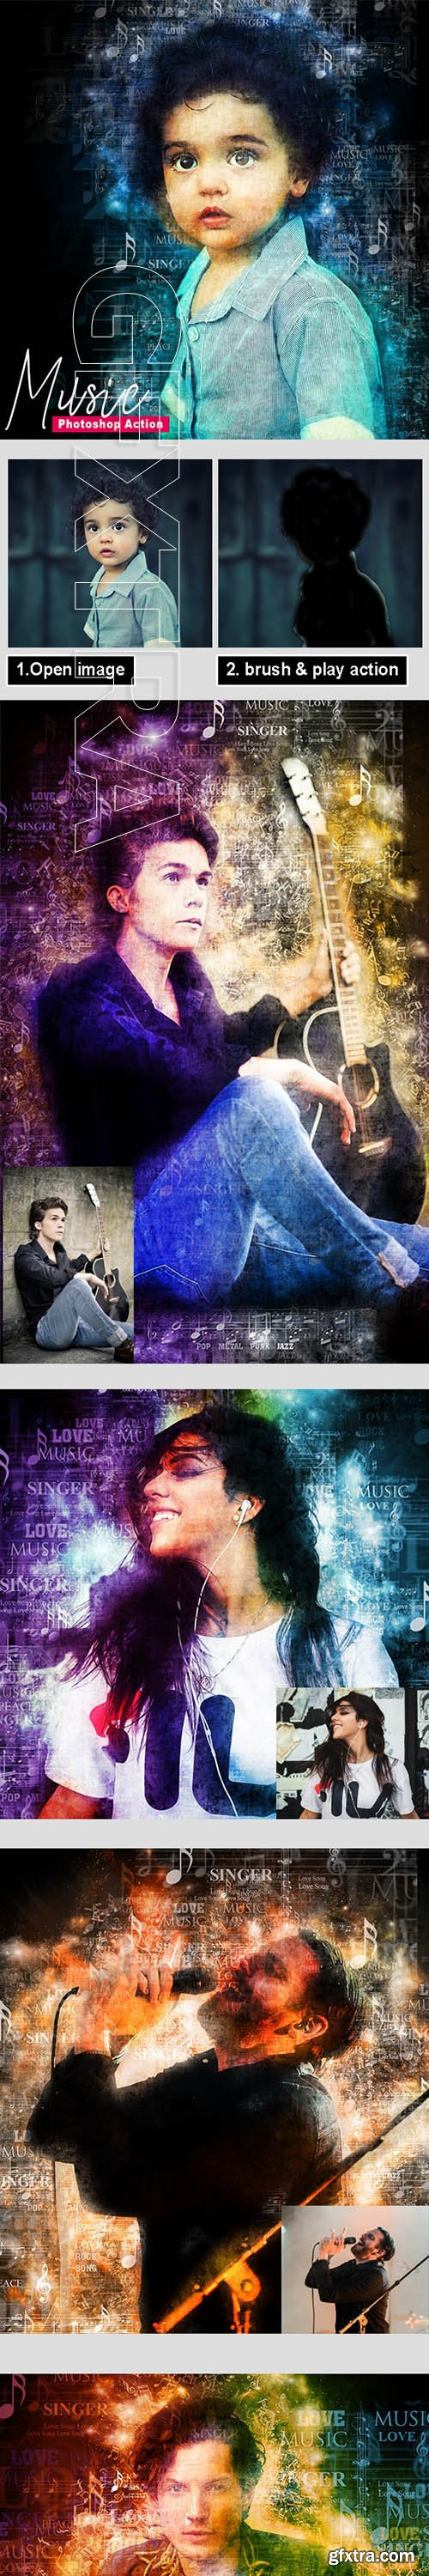 GraphicRiver - Music - Photoshop Action 24578054